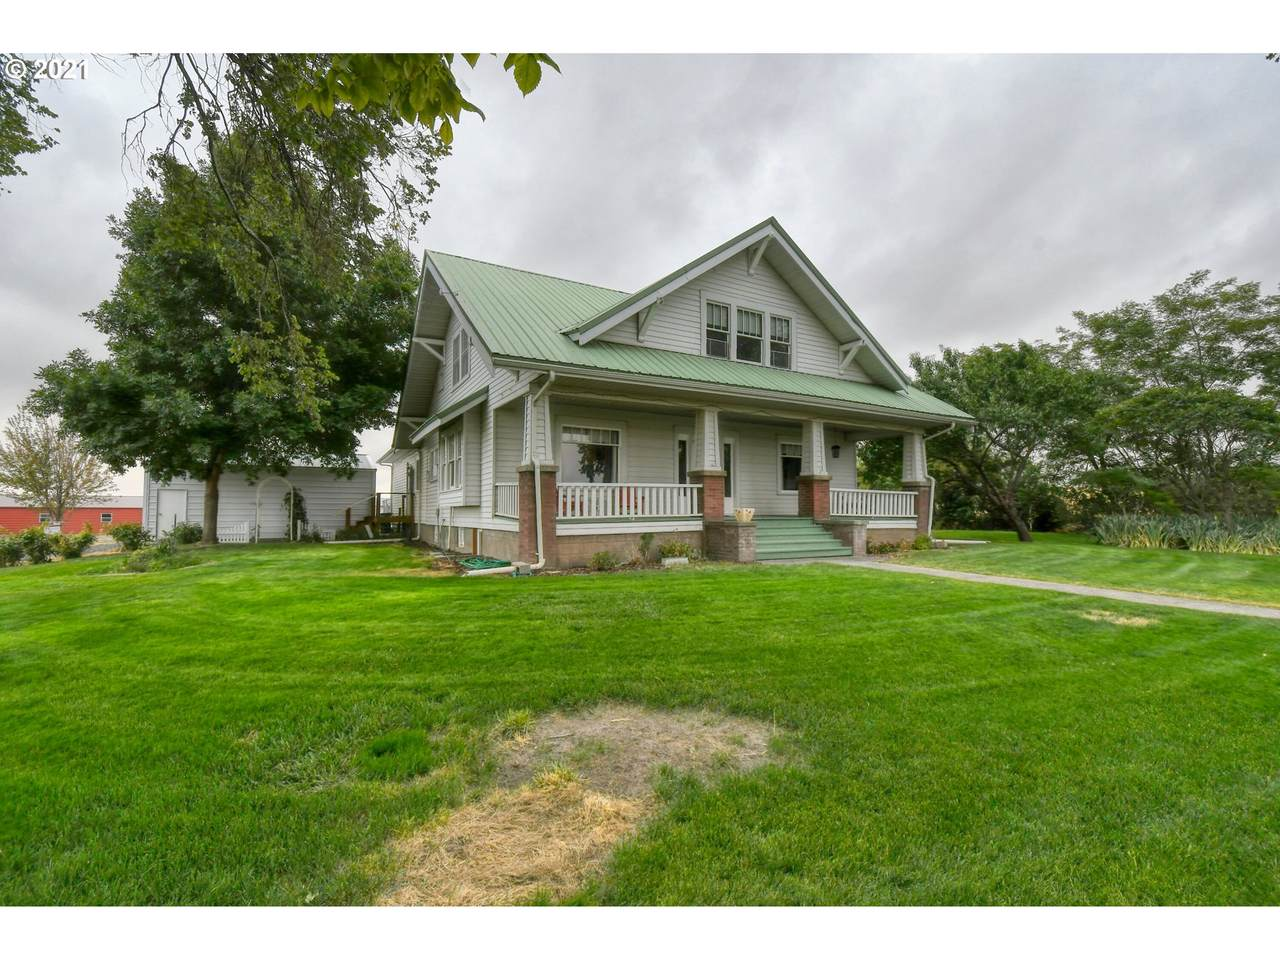 76223 Spring Hollow Rd - Photo 1